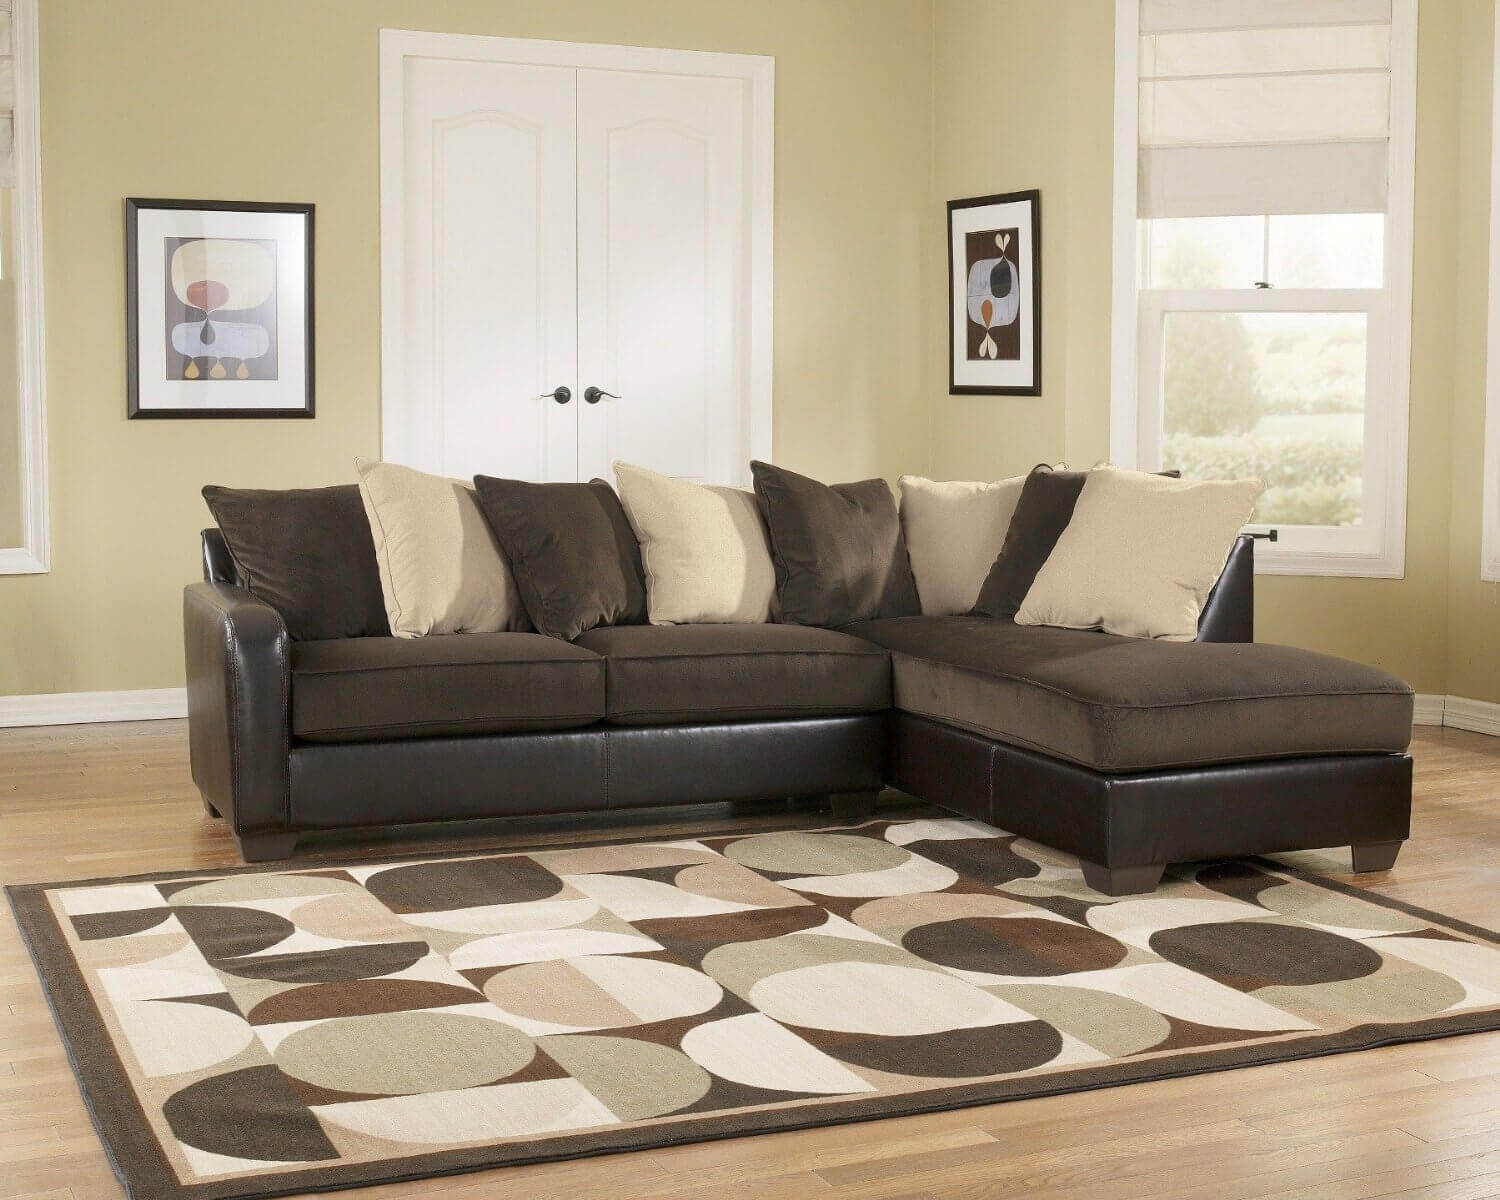 100 Beautiful Sectional Sofas Under 1000 With Chocolate Brown Sectional Sofa (#2 of 12)